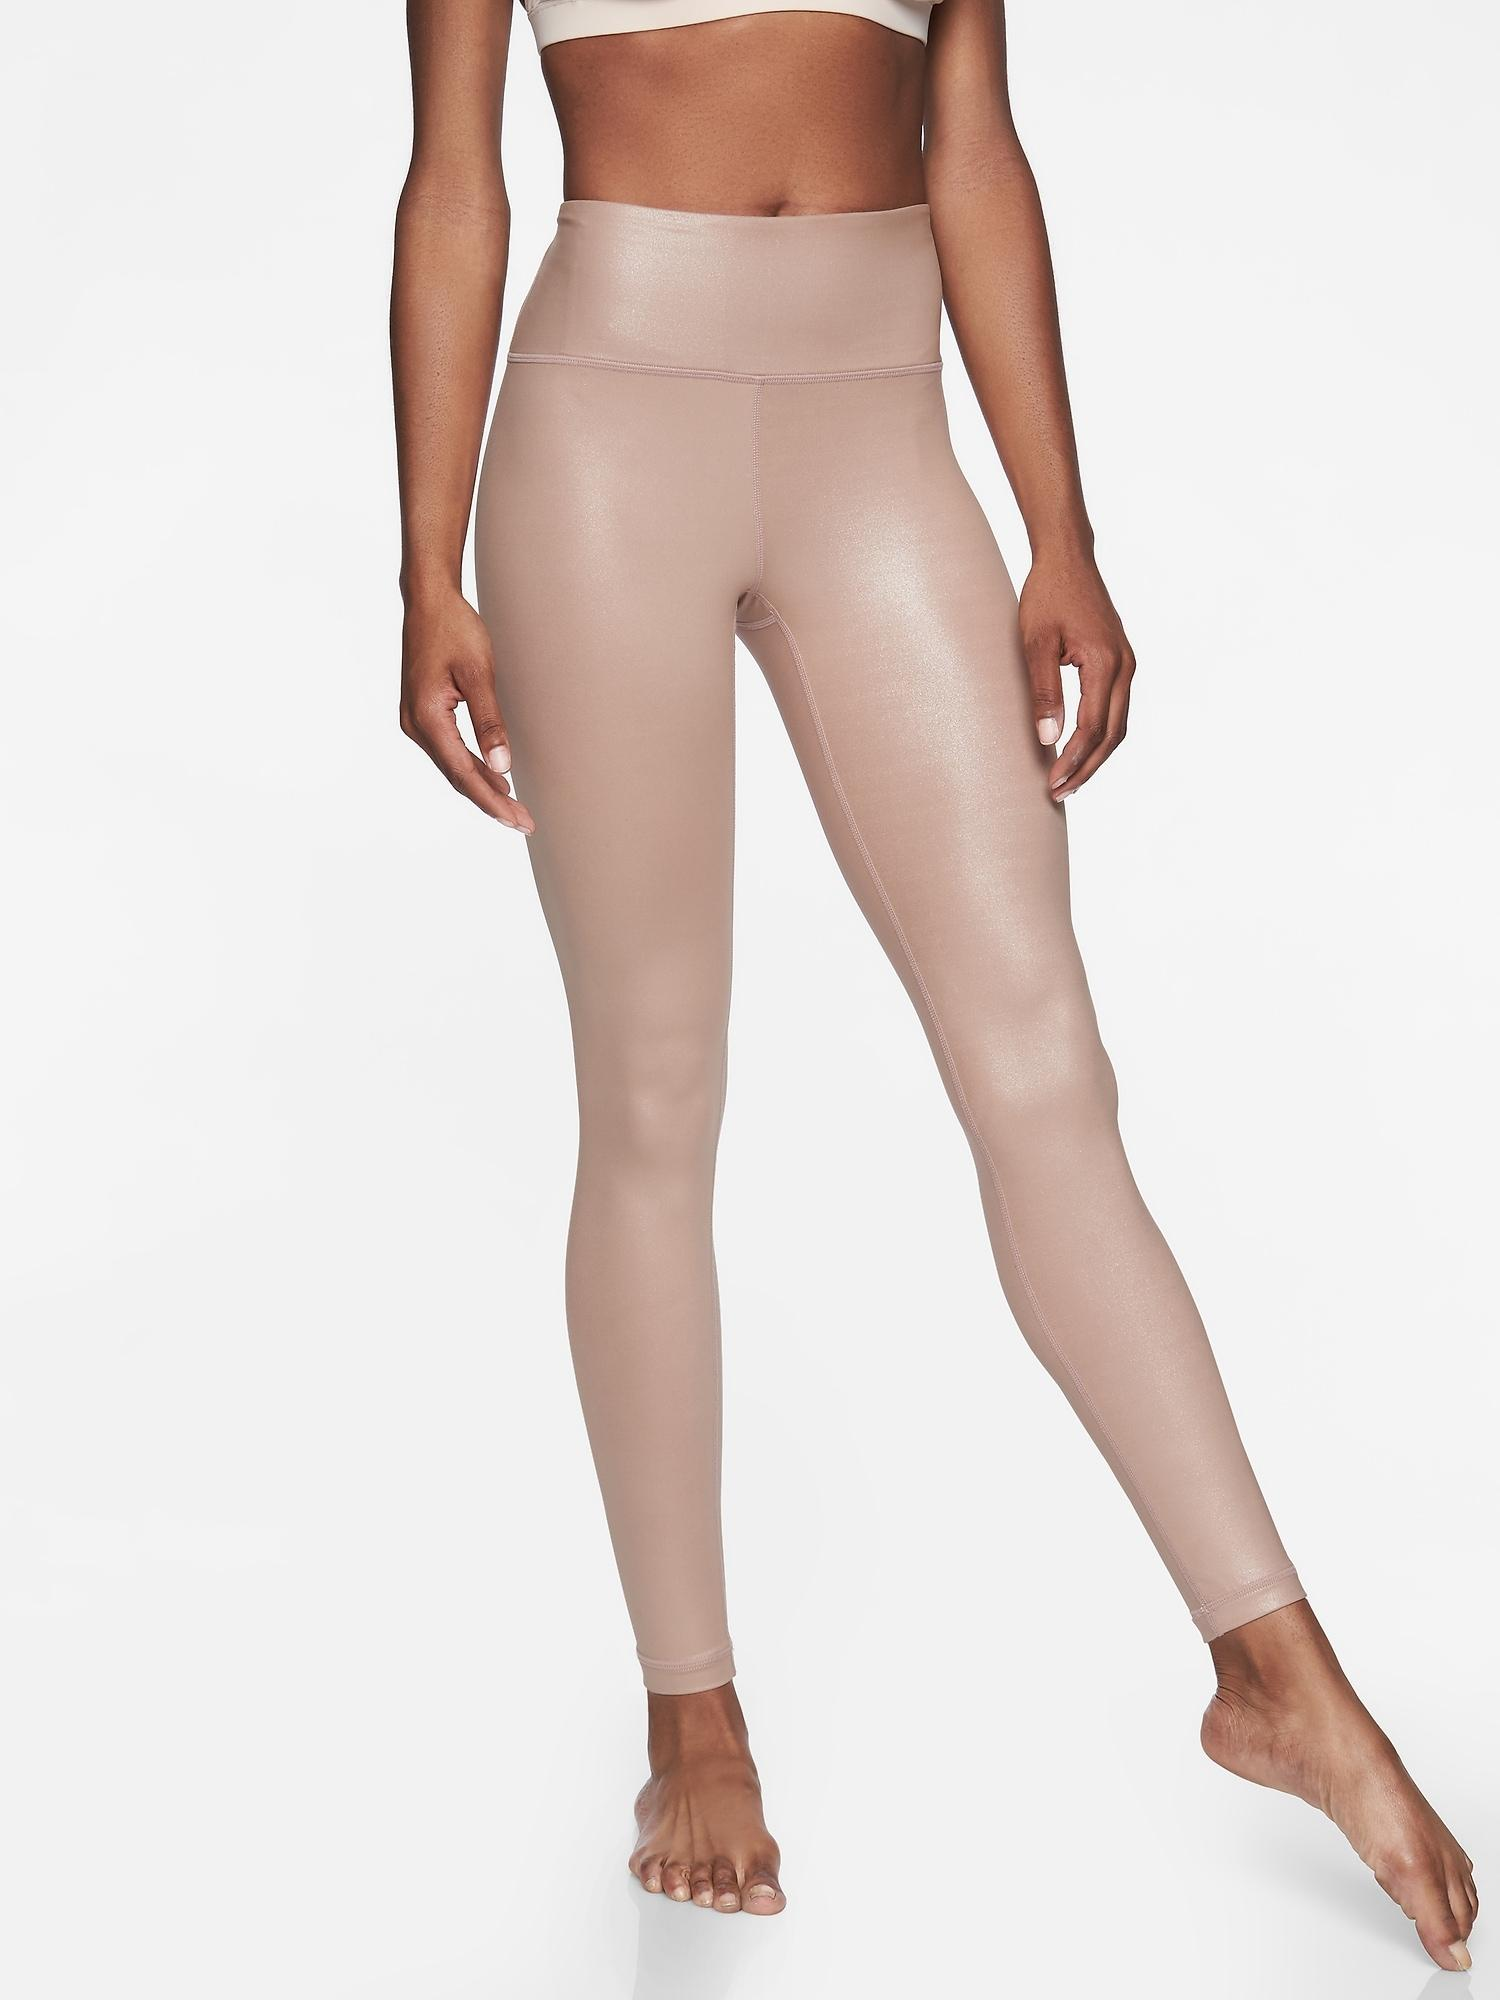 b489e3e4fad4 Lyst - Athleta Elation Shimmer Tight In Powervitatm in Natural